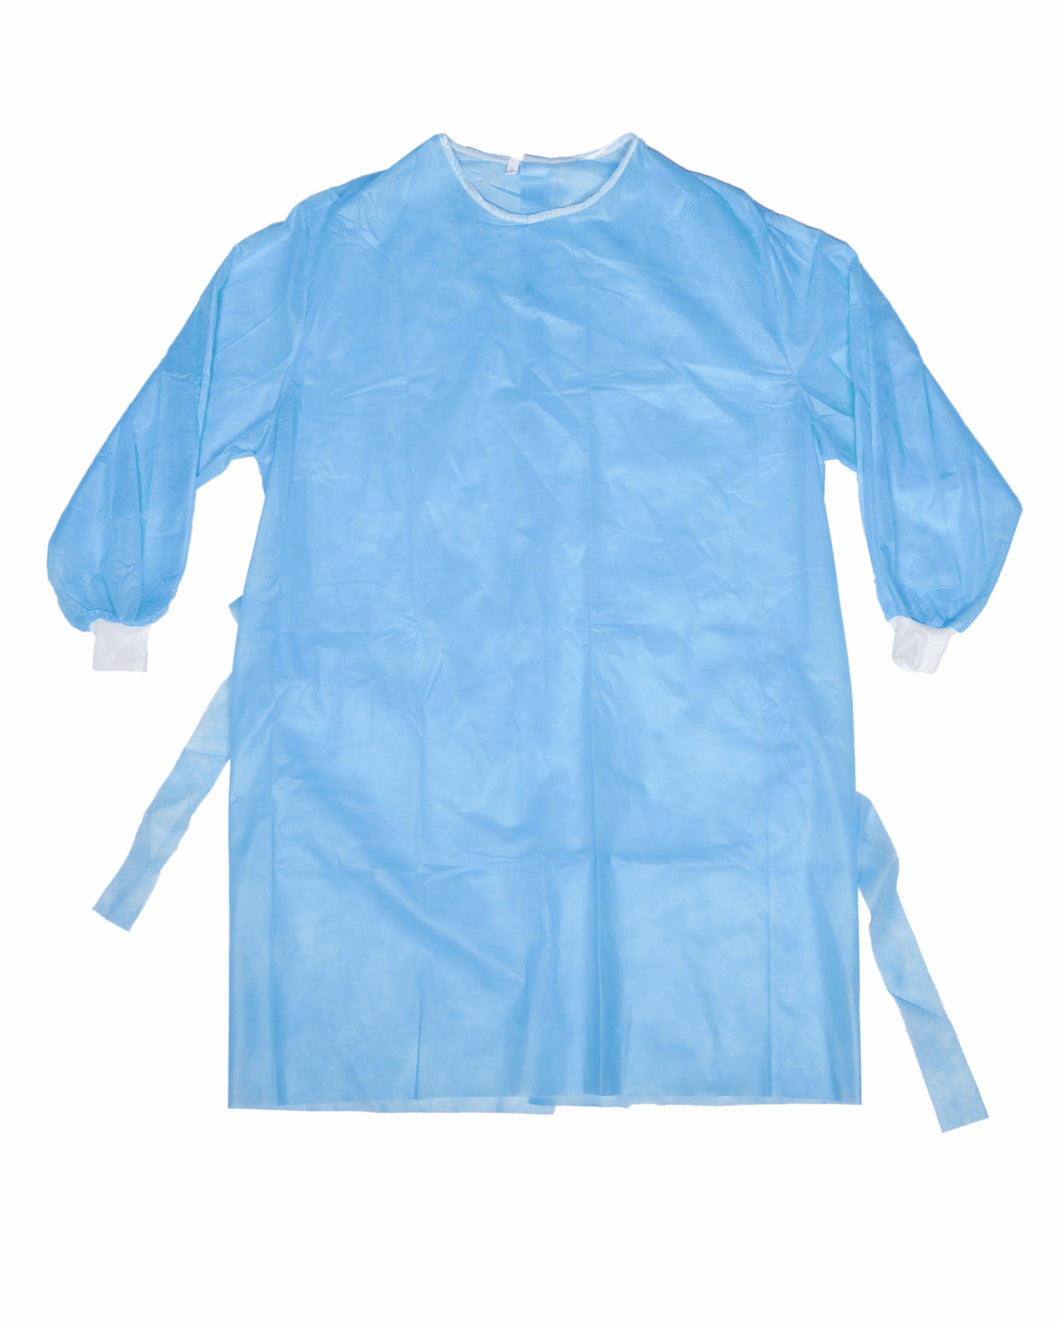 FDA and CE Approved Level III PP Isolation Gowns